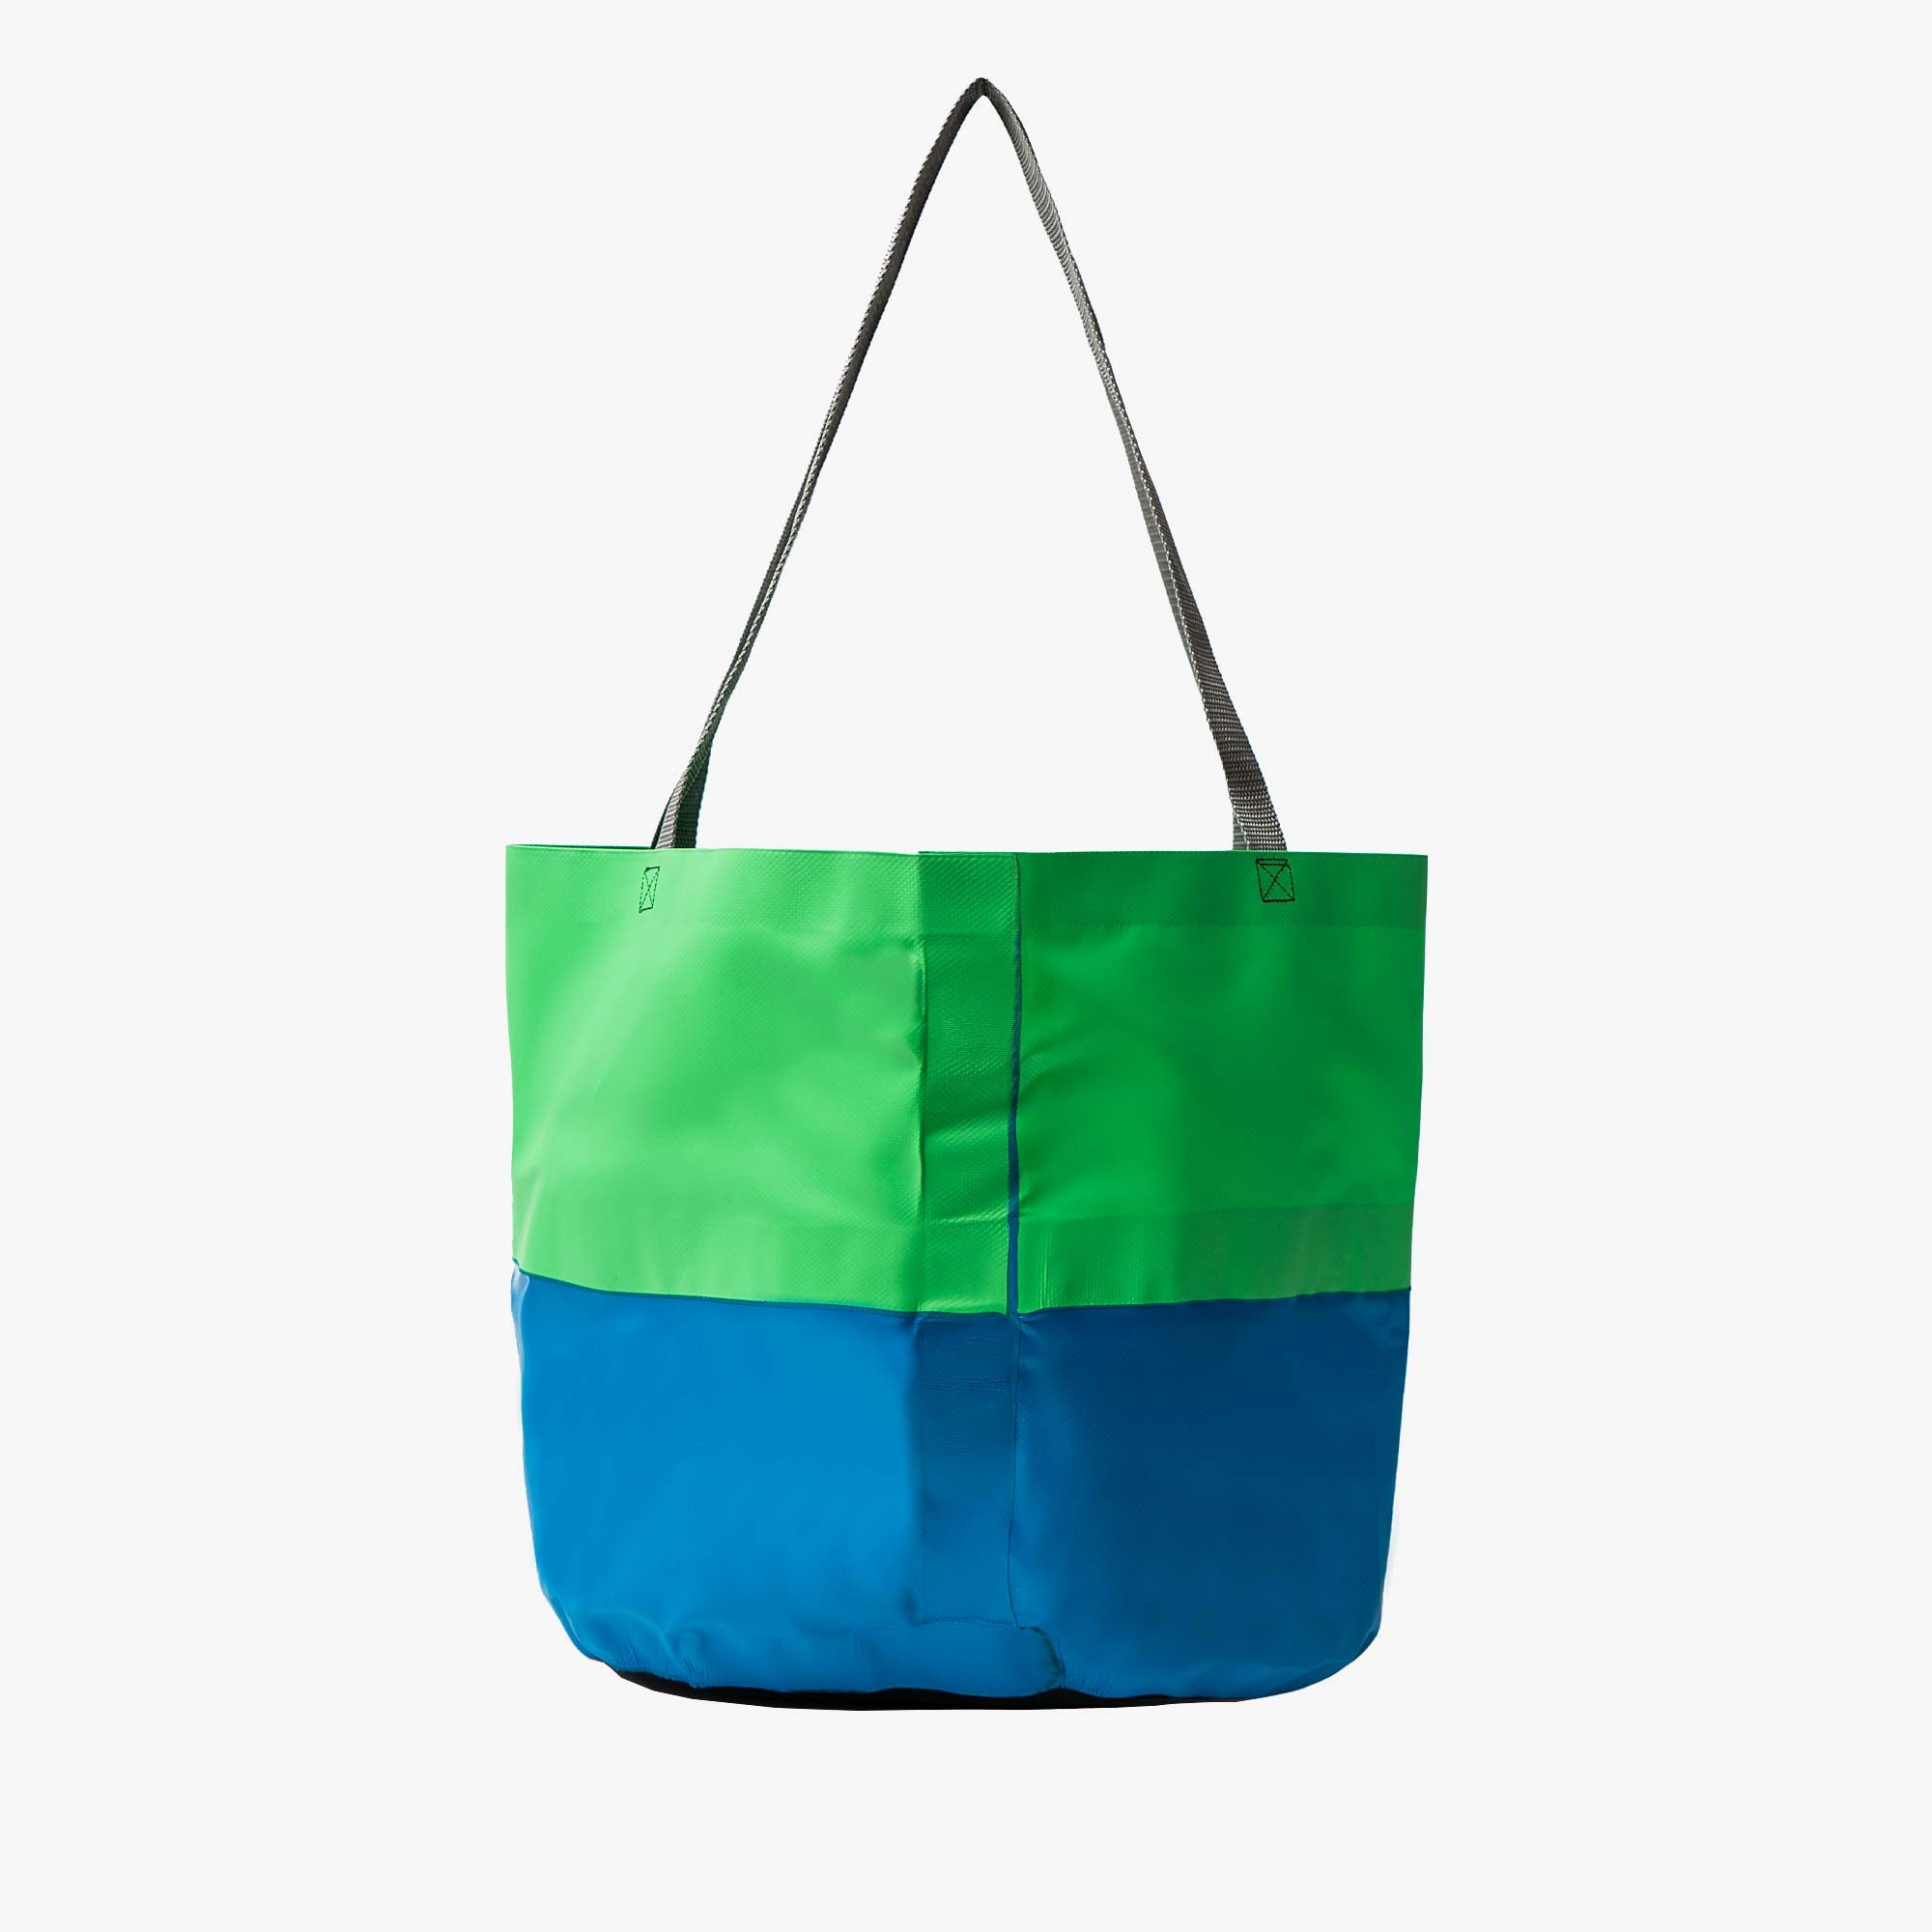 Real Bad Man Rubber Tote - Green / Blue 2